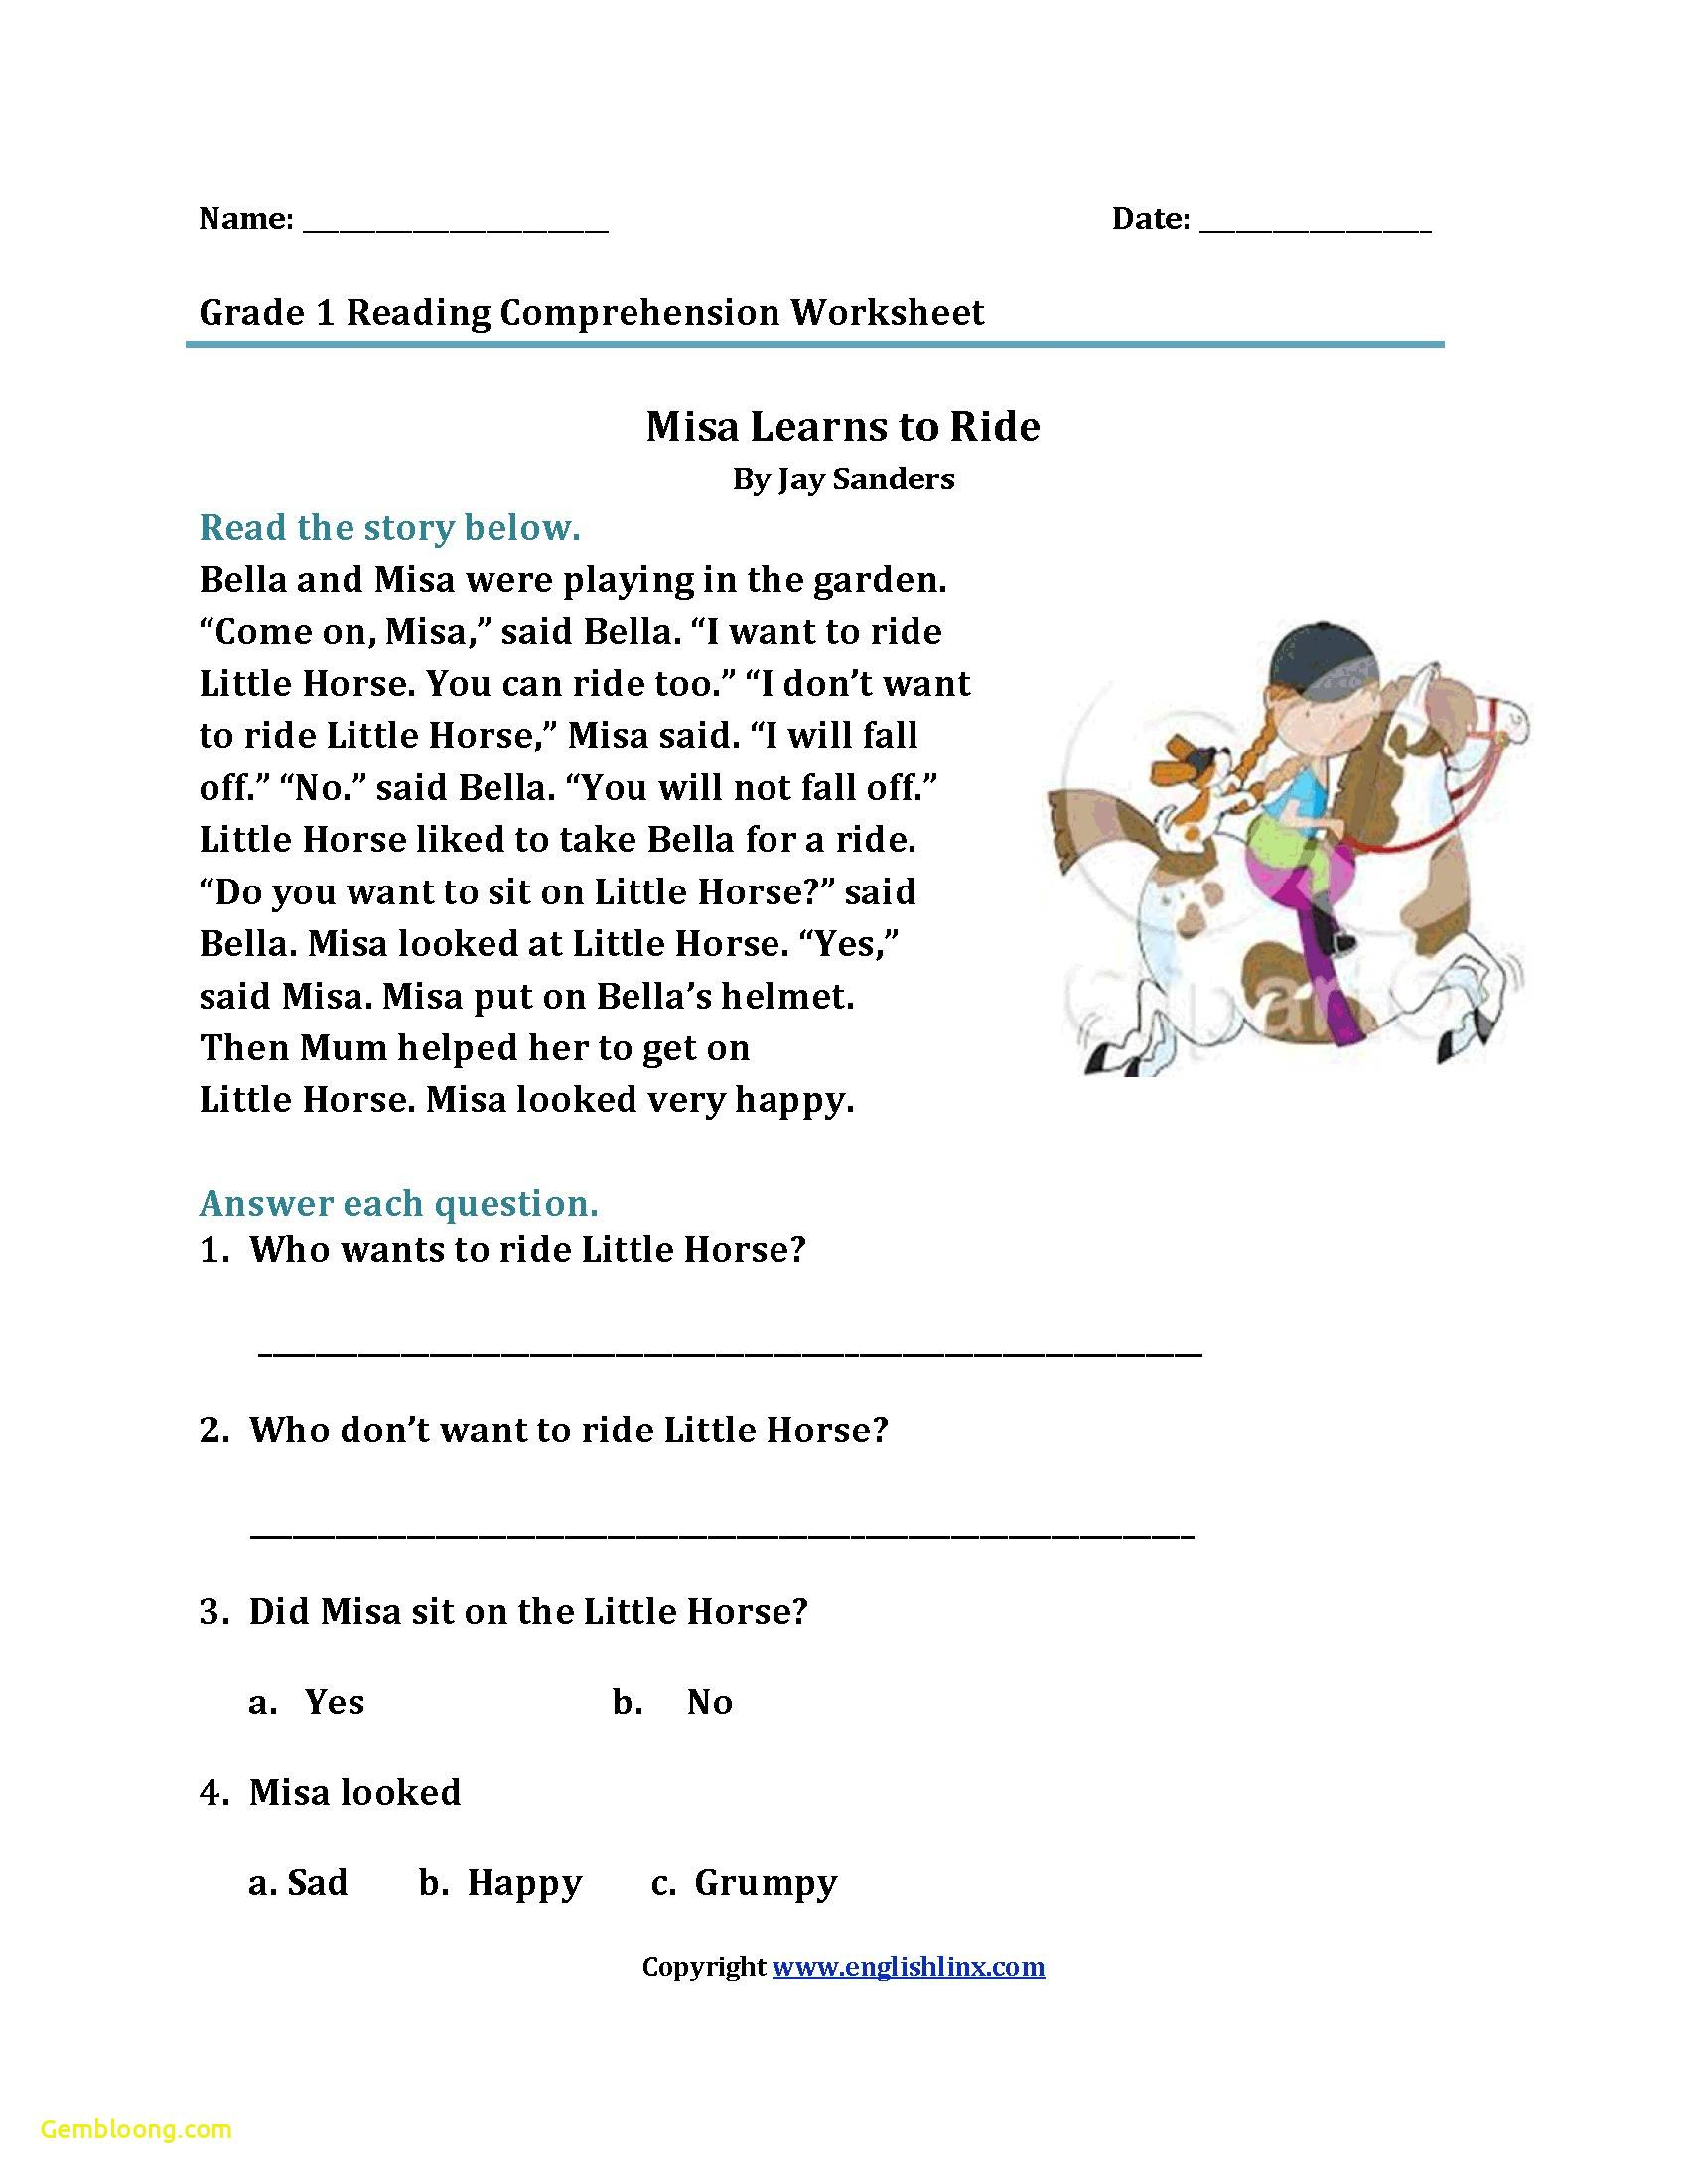 Reading Comprehension Worksheets For 1St Grade - Cramerforcongress | Free Printable Reading Comprehension Worksheets